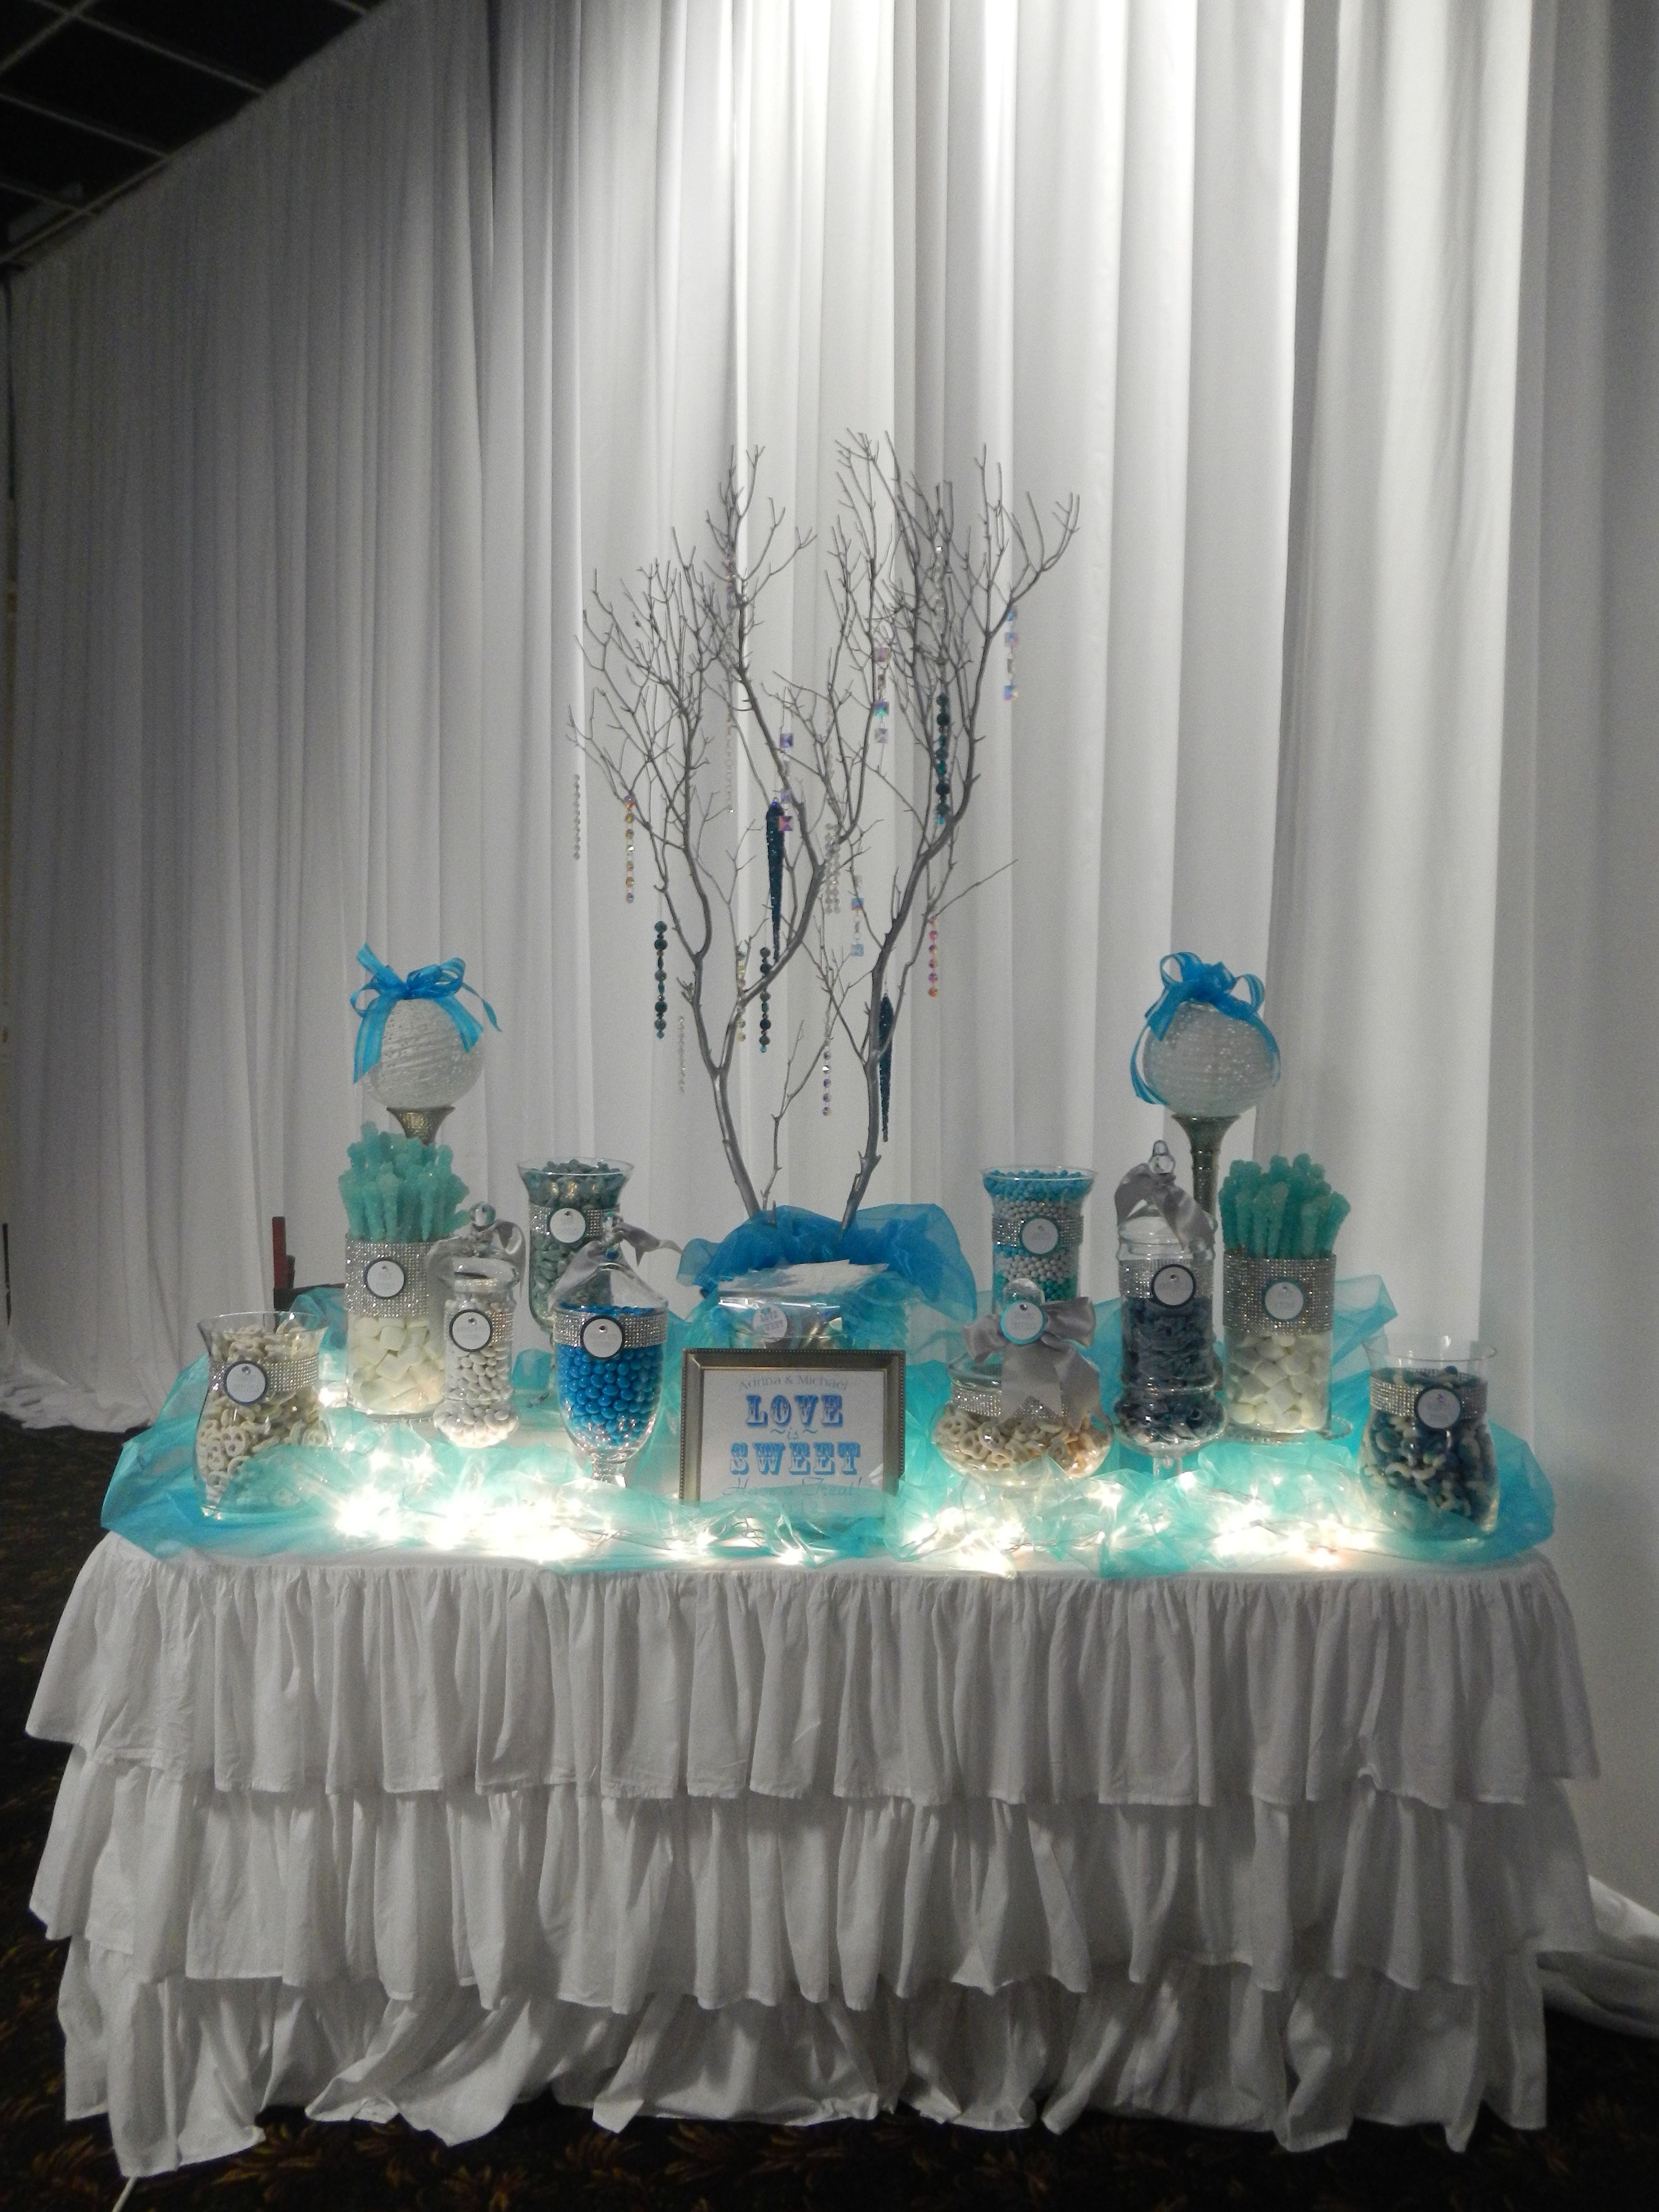 wedding candy buffet by sugarpalooza using tea lights or christmas lights to highlight the table